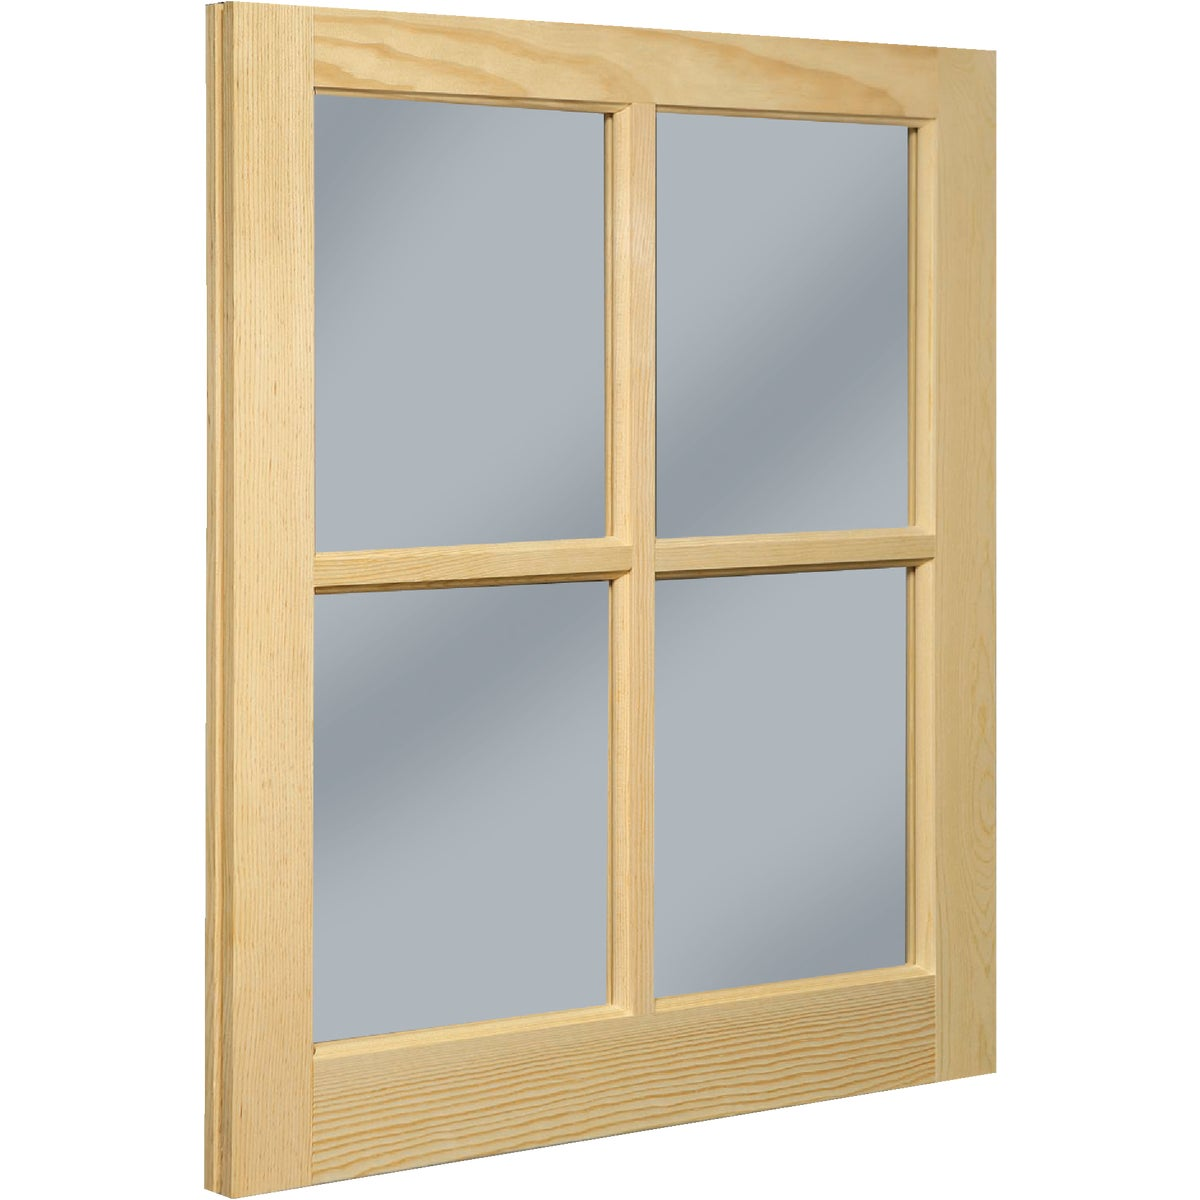 20X25 WOOD BARN SASH - BSW2025 by Northview Window